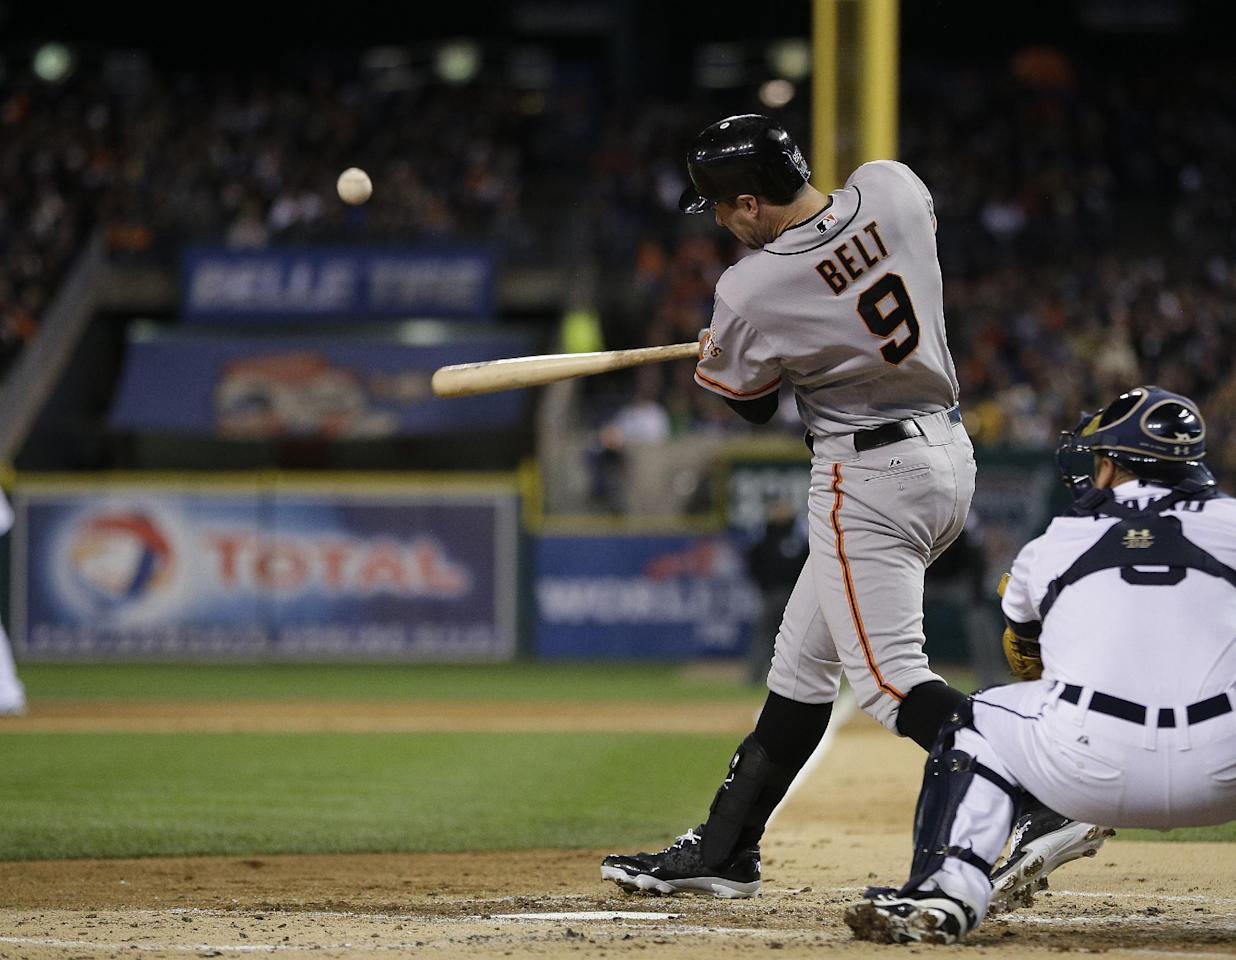 San Francisco Giants' Brandon Belt hits an RBI double during the second inning of Game 4 of baseball's World Series against the Detroit Tigers Sunday, Oct. 28, 2012, in Detroit. (AP Photo/Matt Slocum)